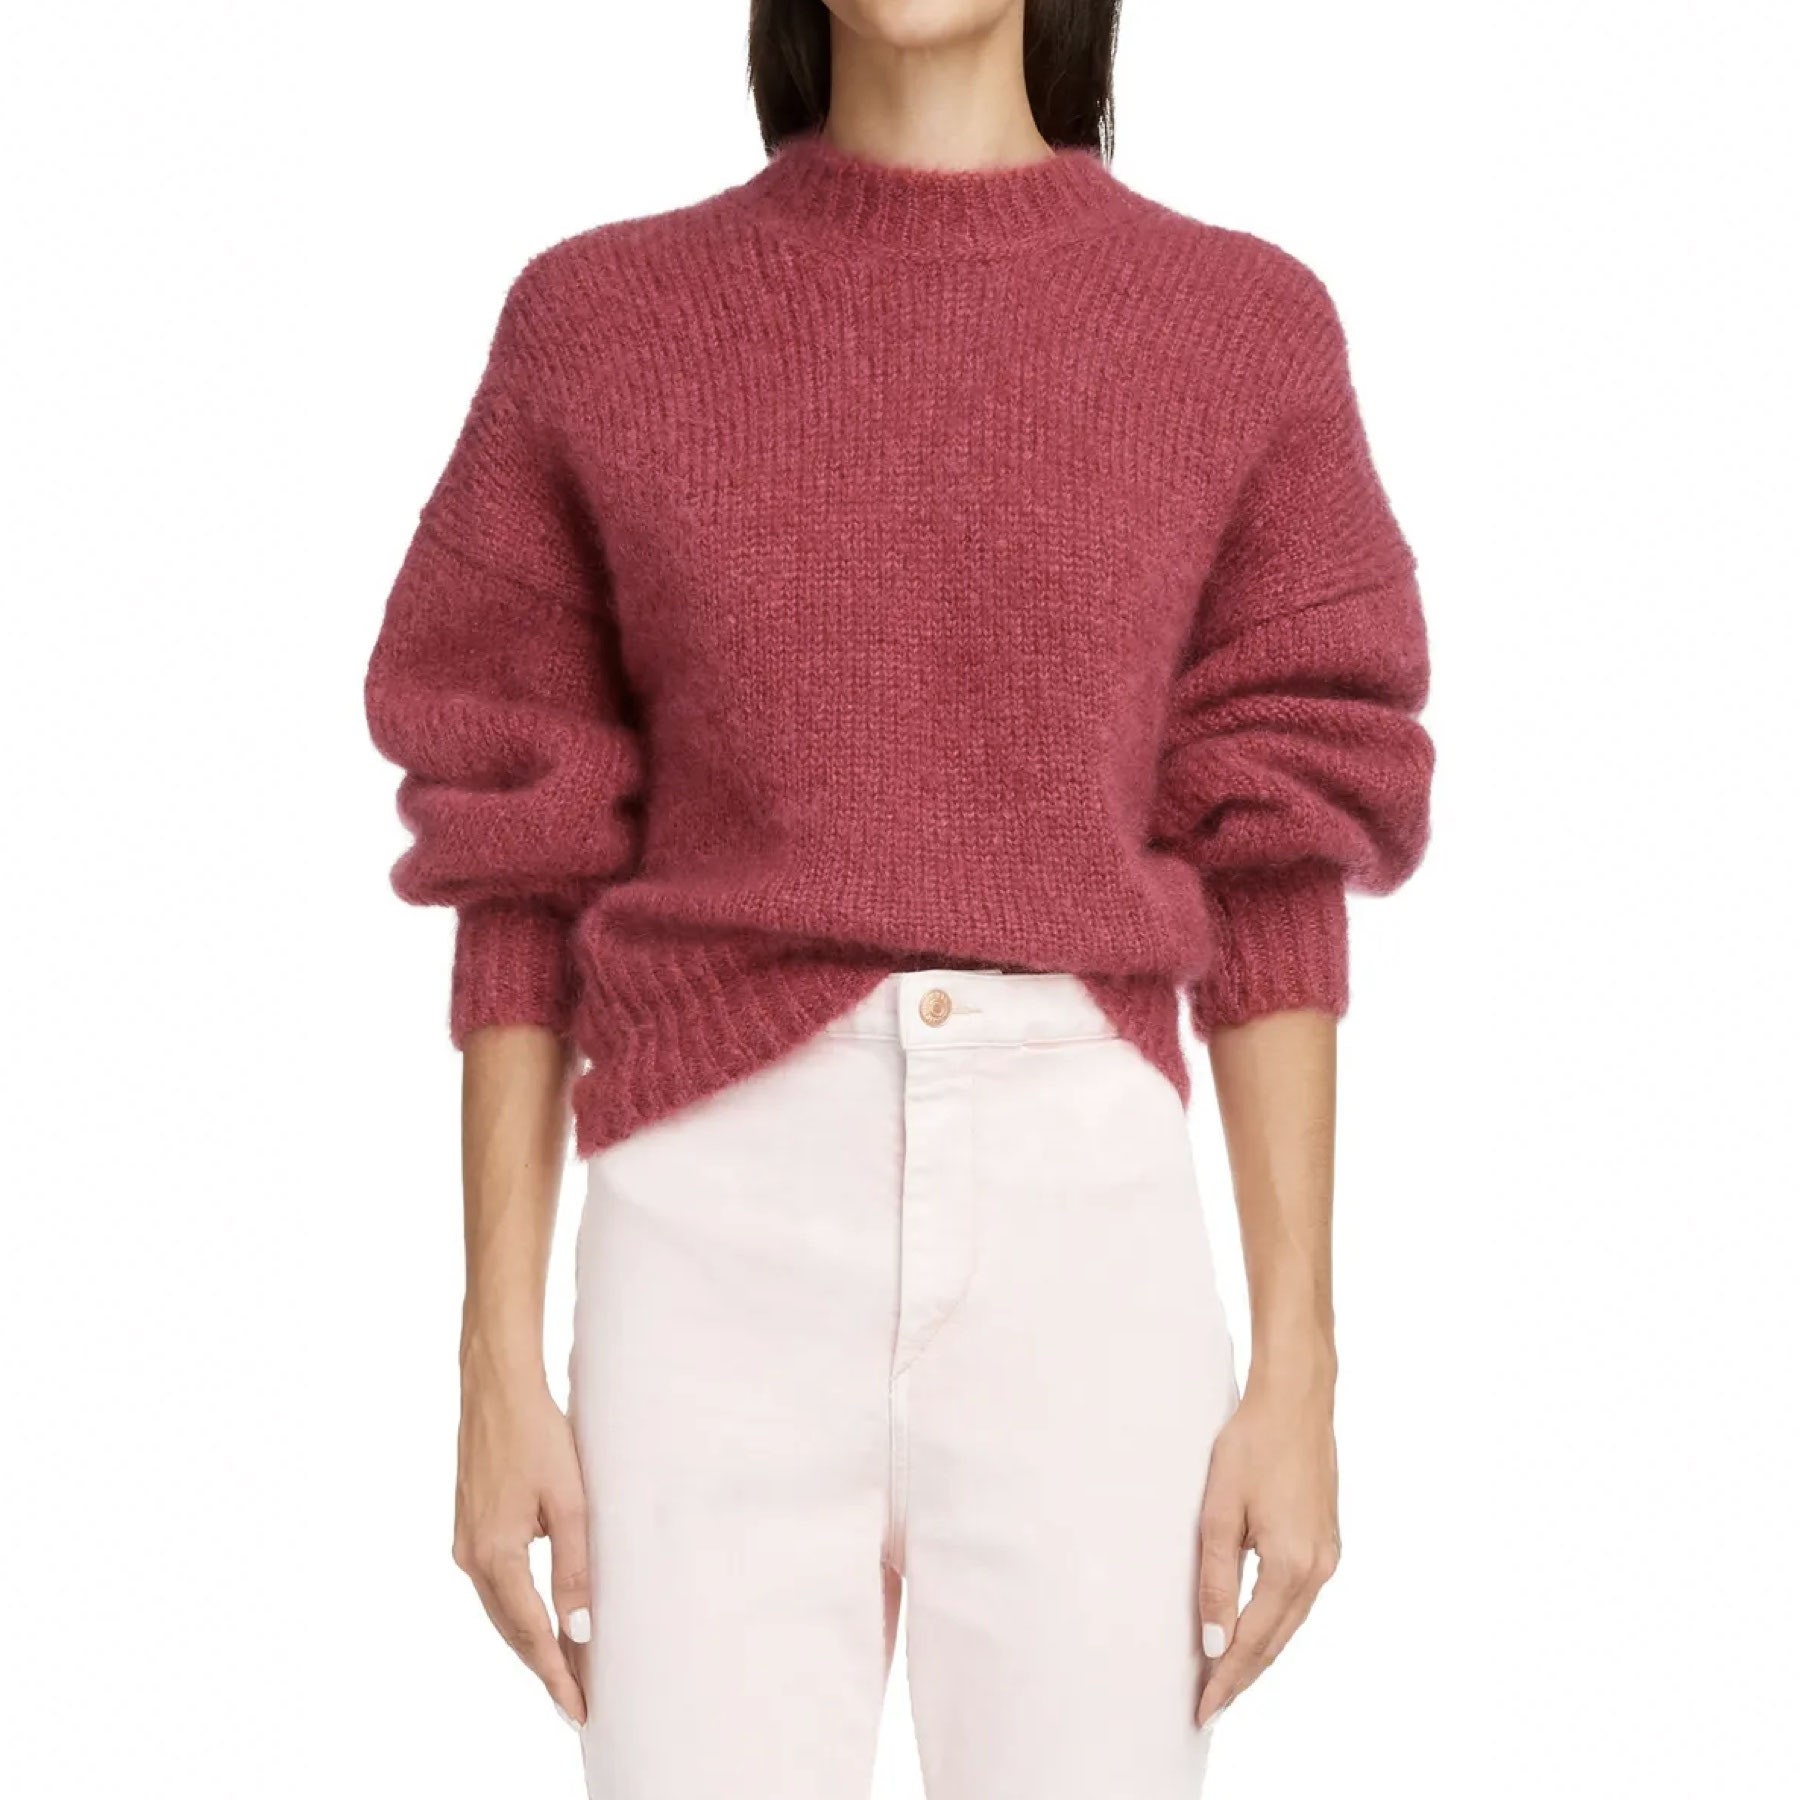 model wearing chunky pink sweater with white pants